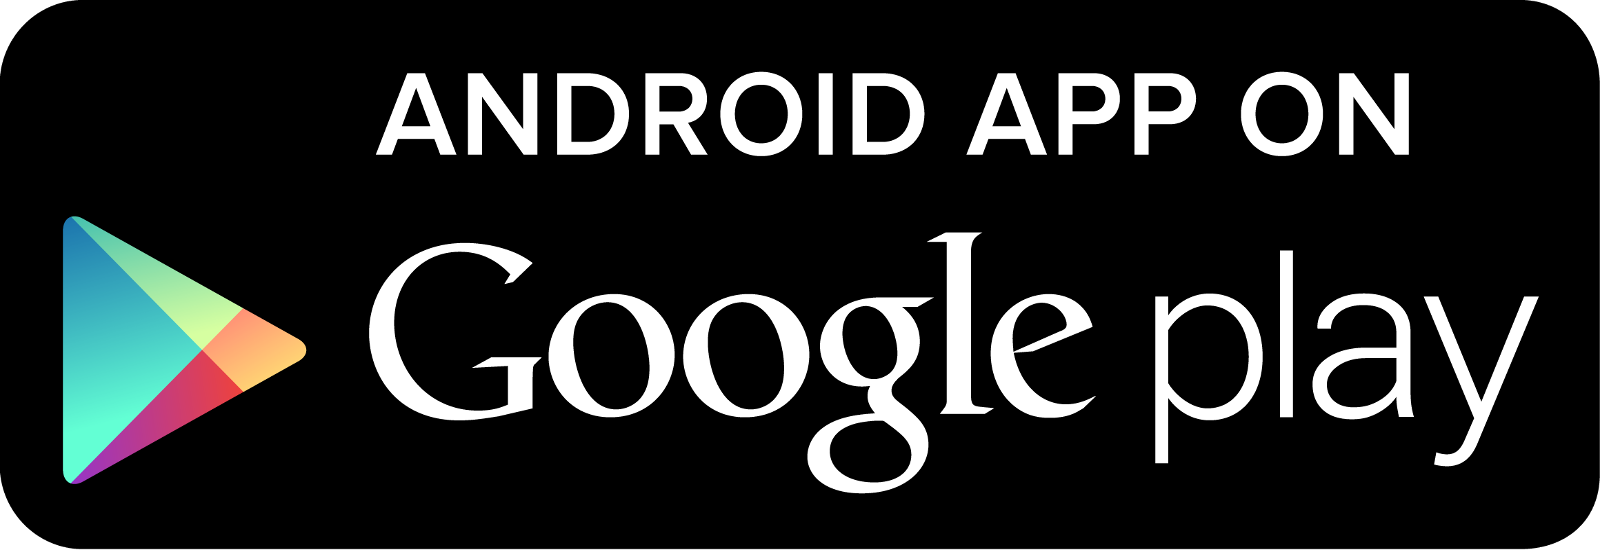 available on android